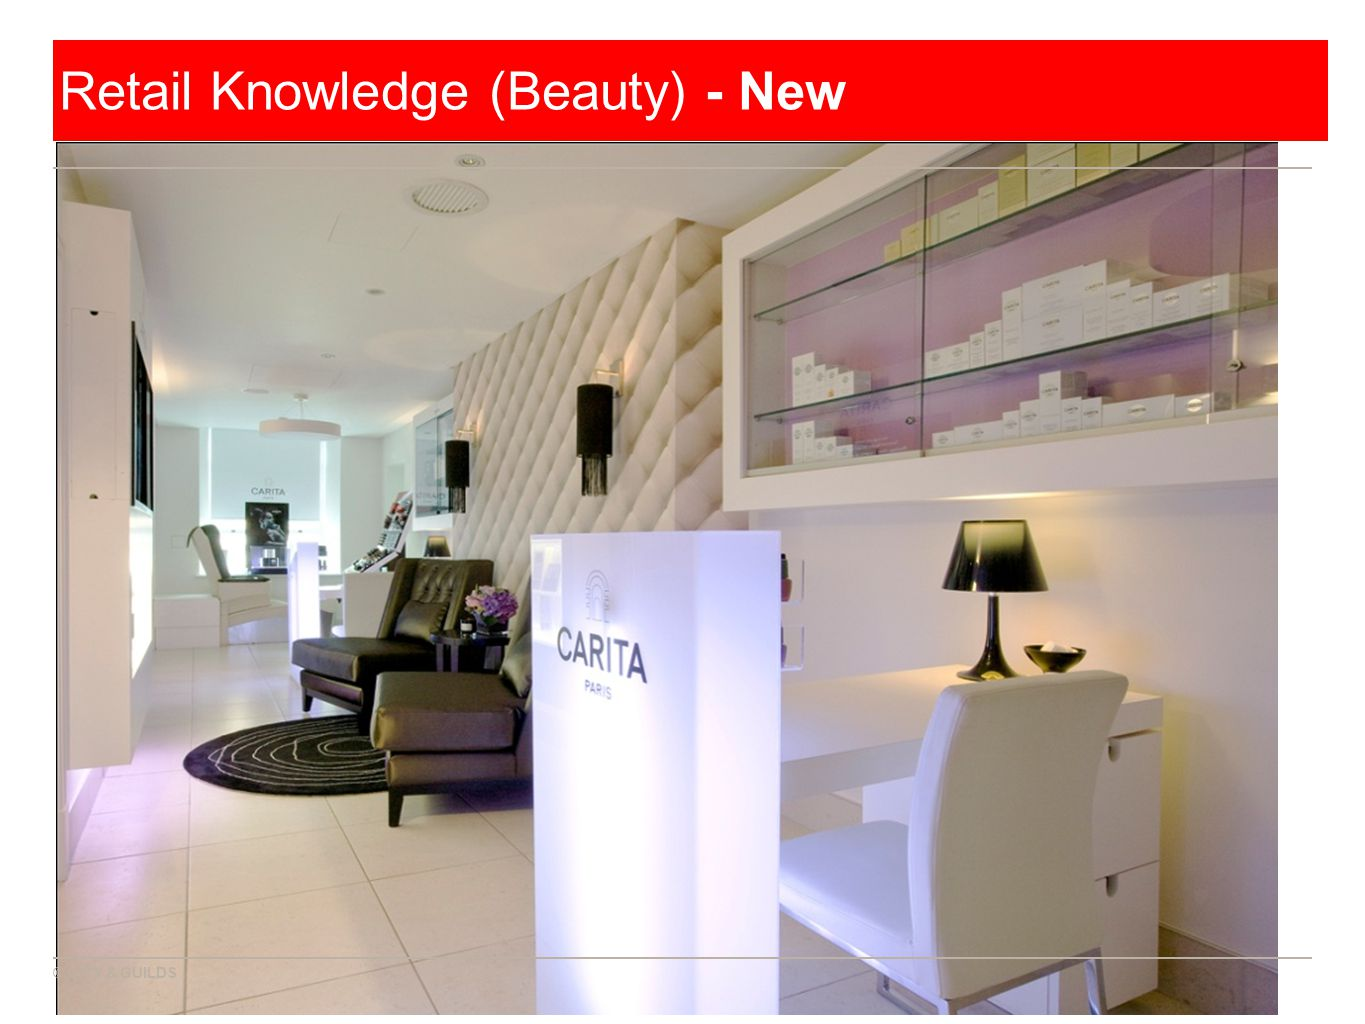 © CITY & GUILDS Retail Knowledge (Beauty) - New